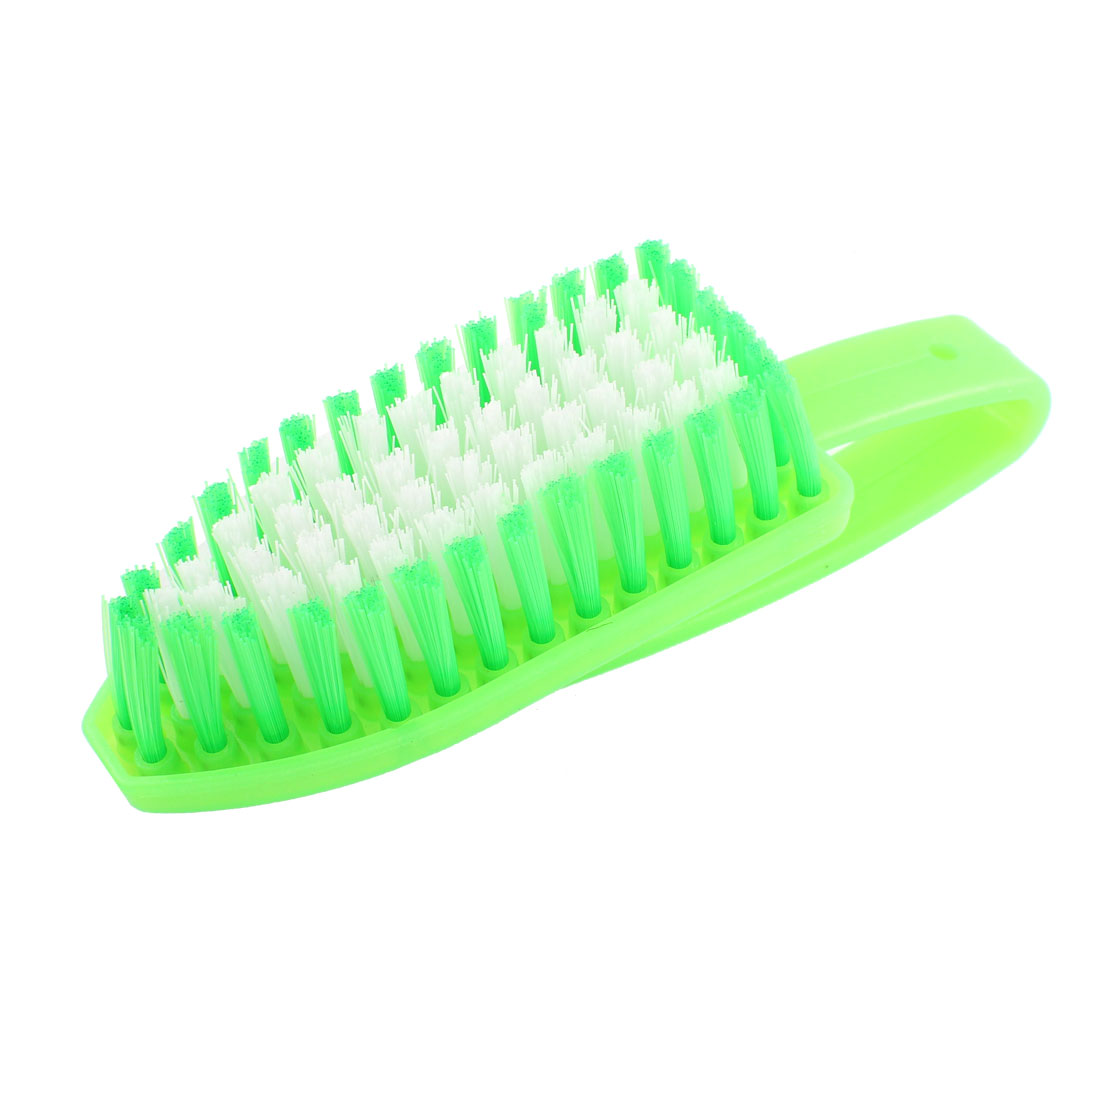 Home Green Plastic Handgrip Clothing Floor Washing Scrubbing Brush